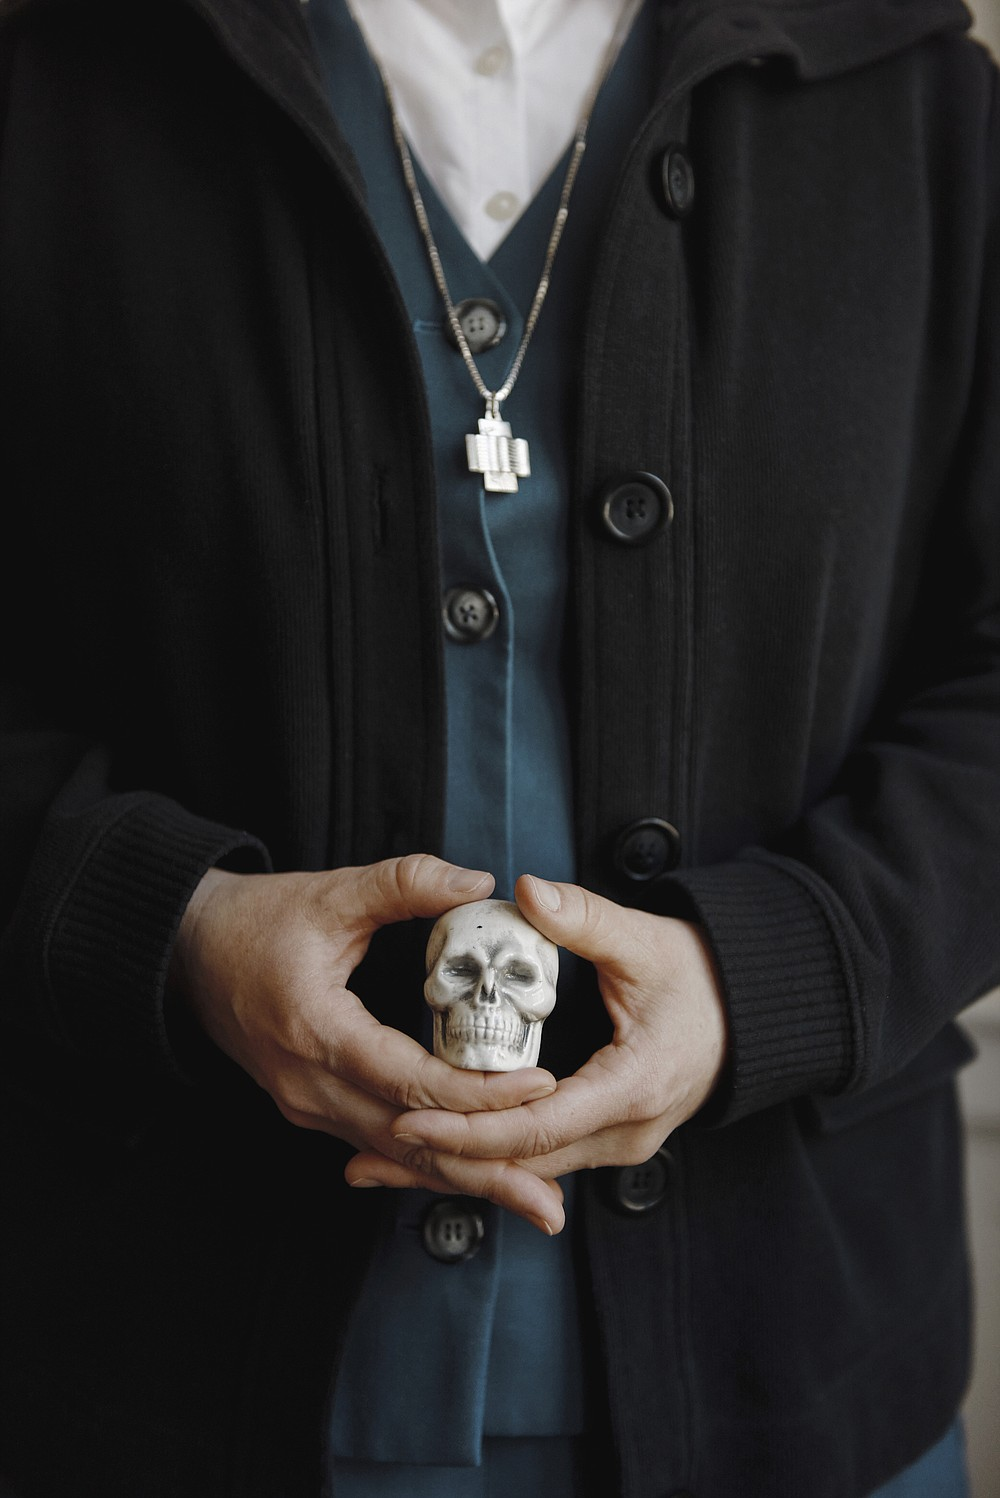 """Sister Theresa Aletheia Noble holds a small sculpture of a skull at Daughters of St. Paul convent in Boston, May 12, 2021. Since 2017, Sister Aletheia has made it her mission to revive the practice of memento mori, a Latin phrase meaning """"Remember your death,"""" which encourages intentional thought about one's death every day as a means of appreciating the present and focusing on the future. (Tony Luong/The New York Times)"""